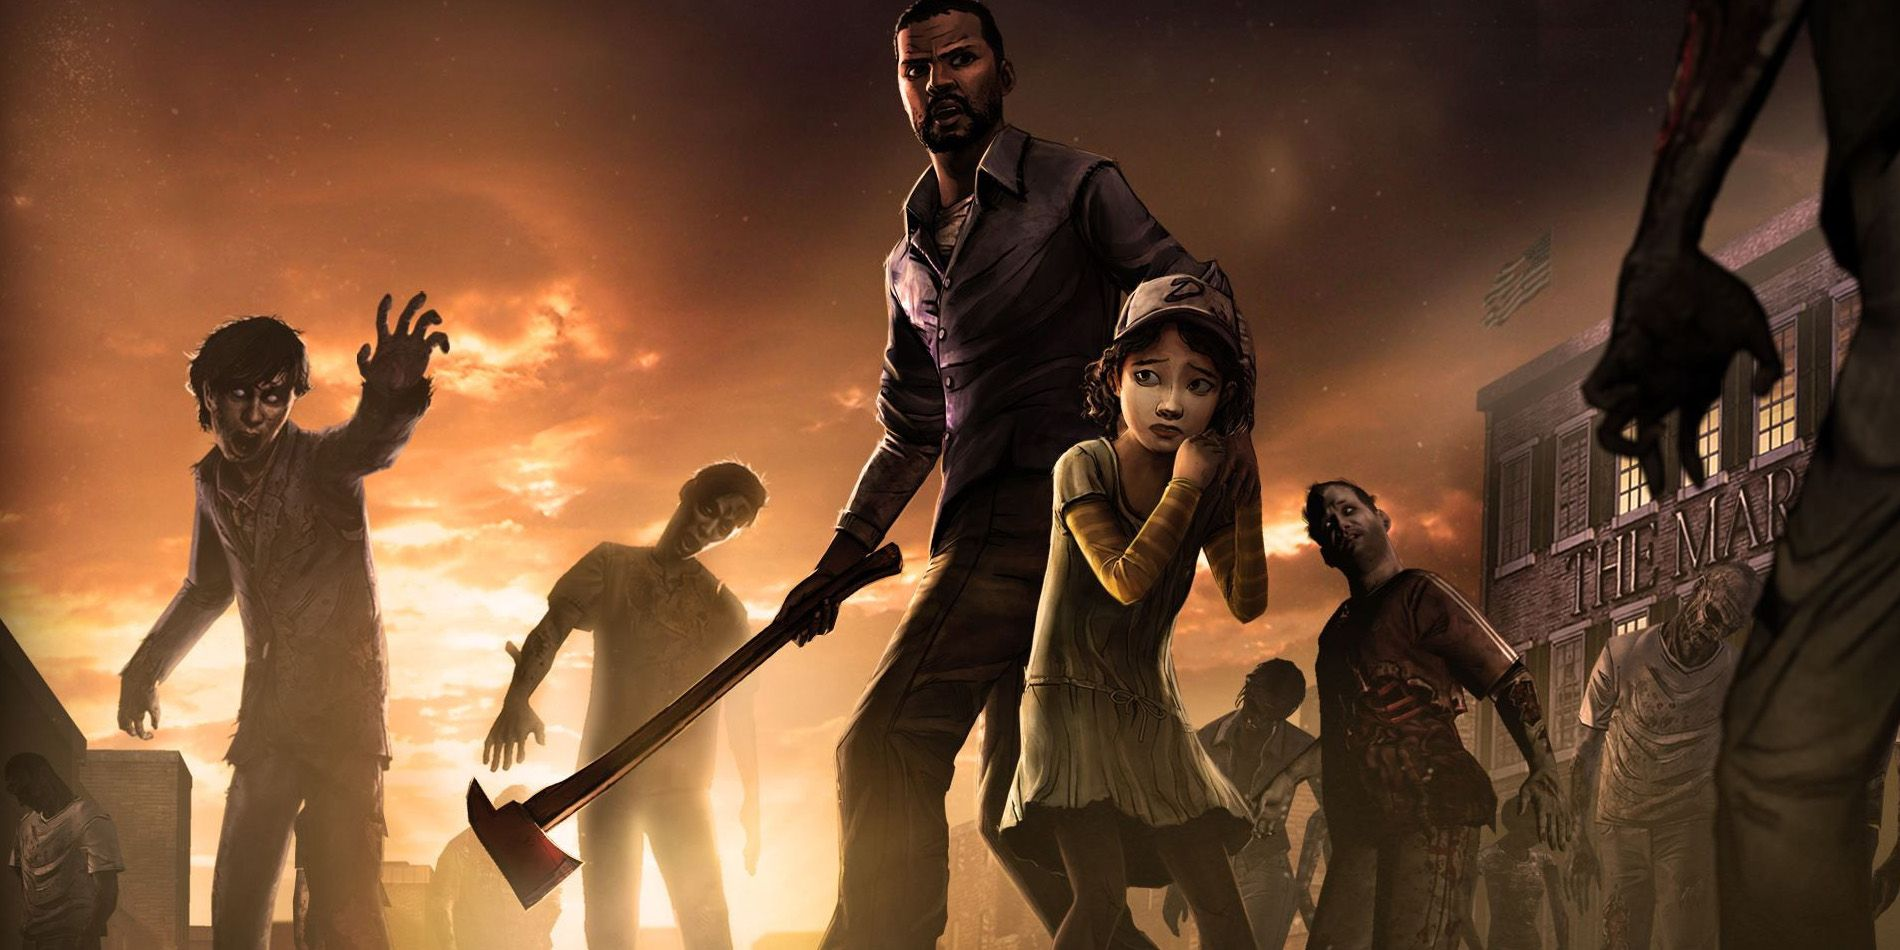 15 Things You Didn't Know About Telltale's The Walking Dead